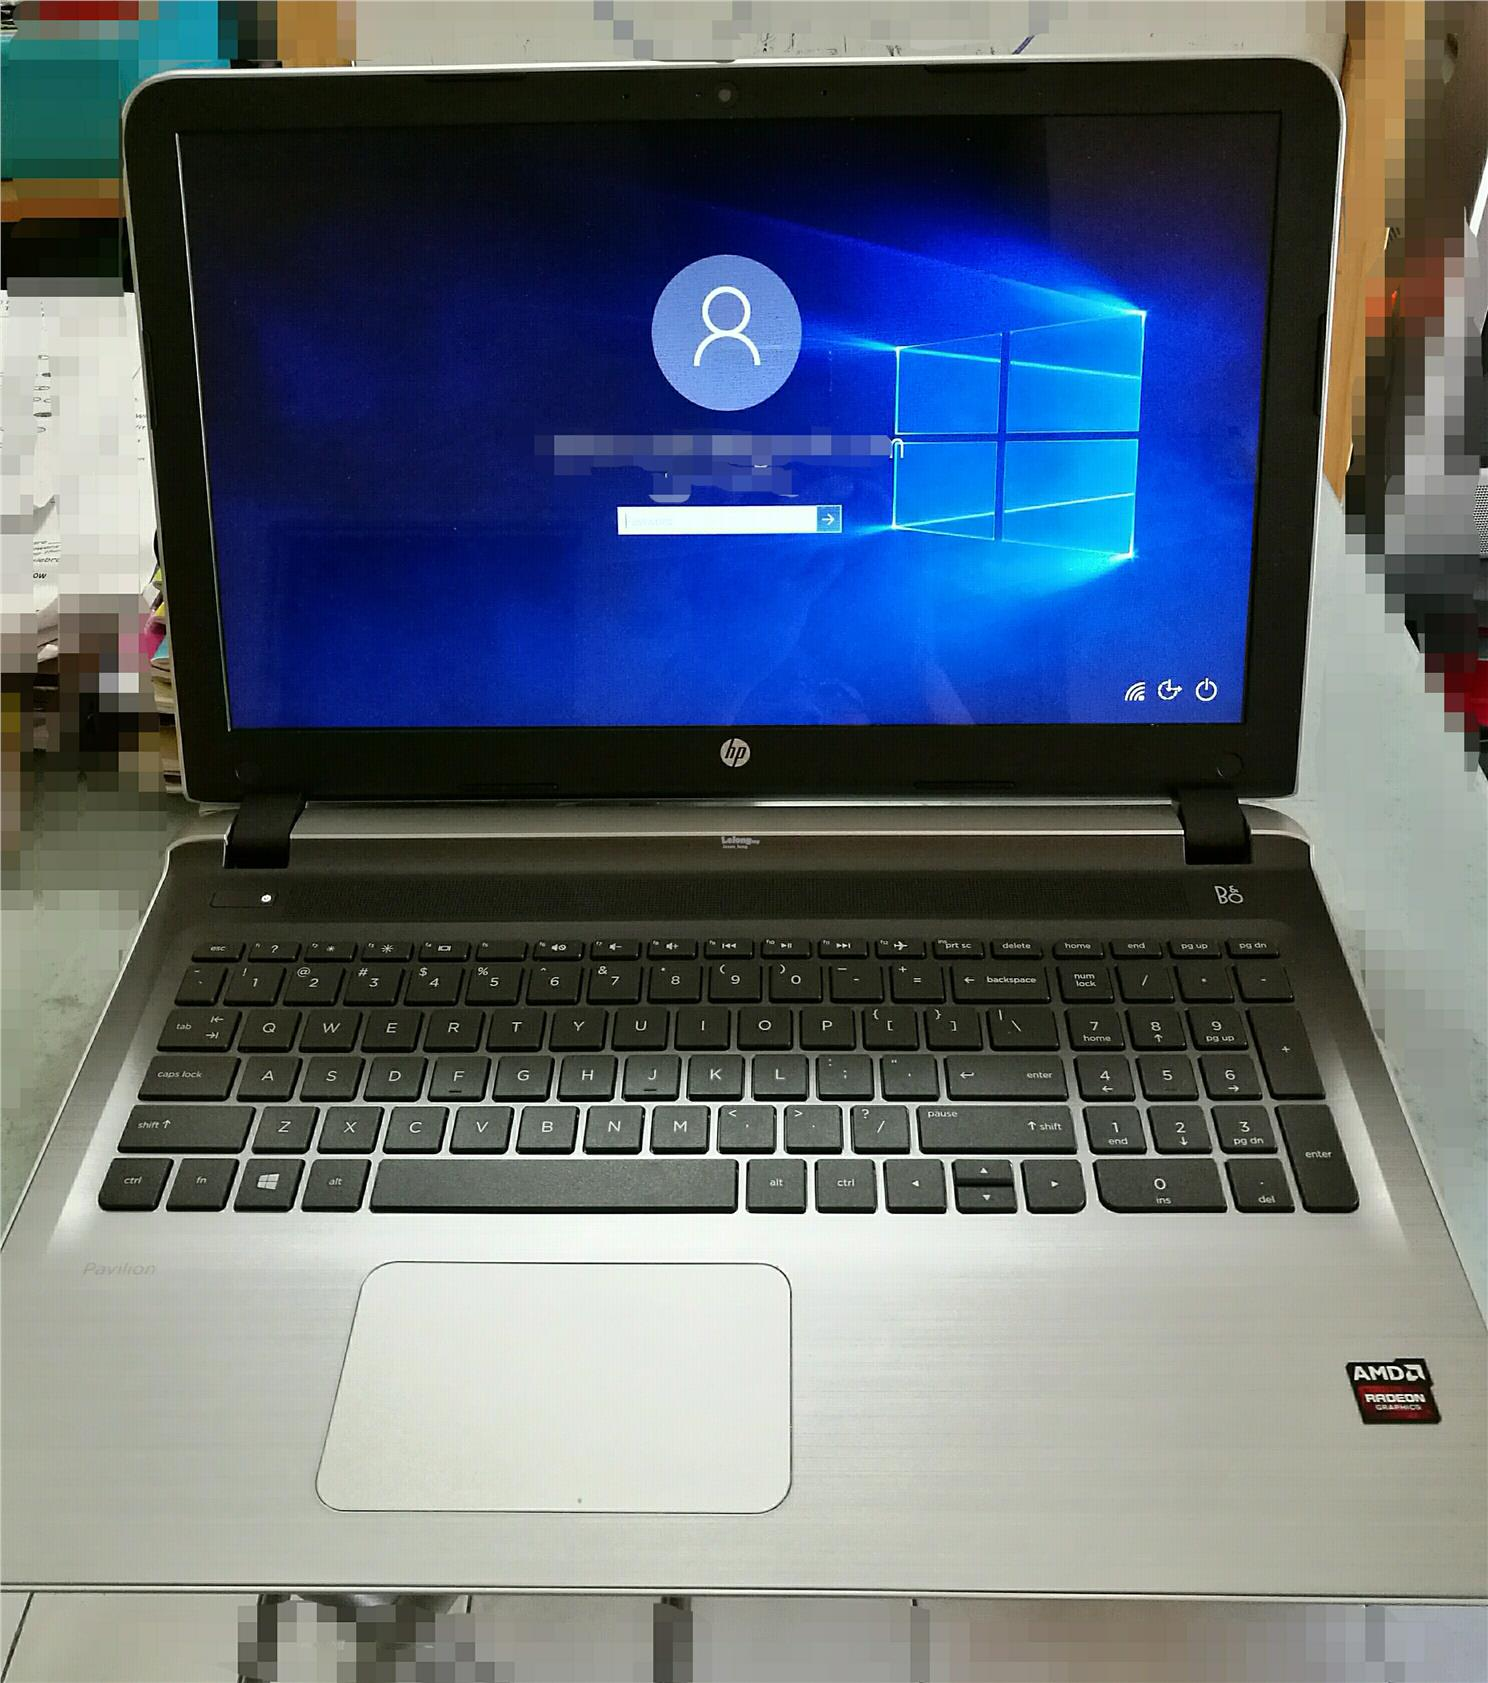 HP PAVILION MULTIMEDIA NOTEBOOK 15 6 INCH LIKE NEW ‹ ›